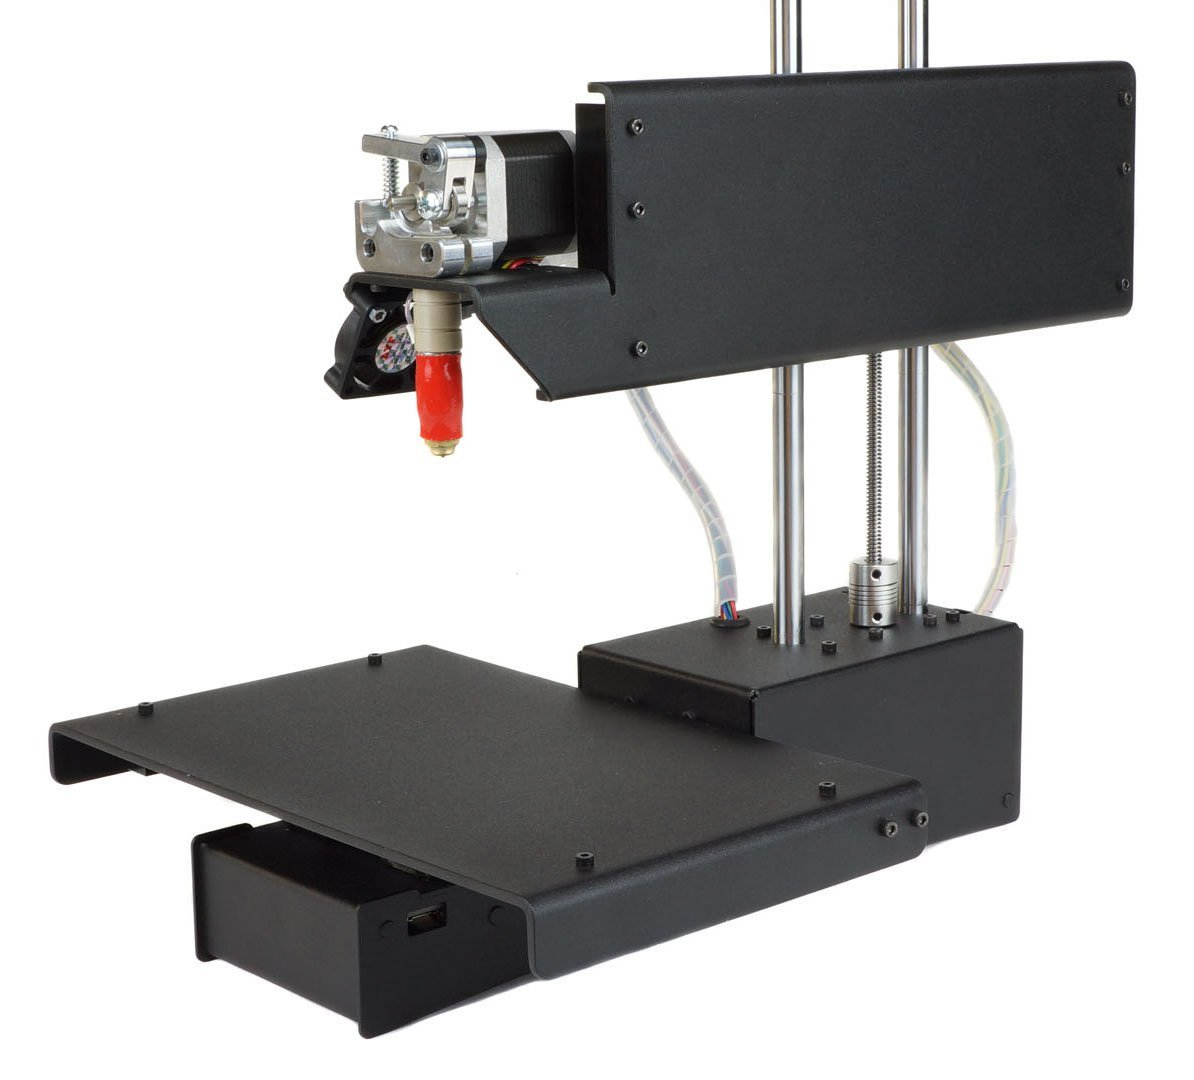 3D Printer Printrbot Simple Maker`s kit